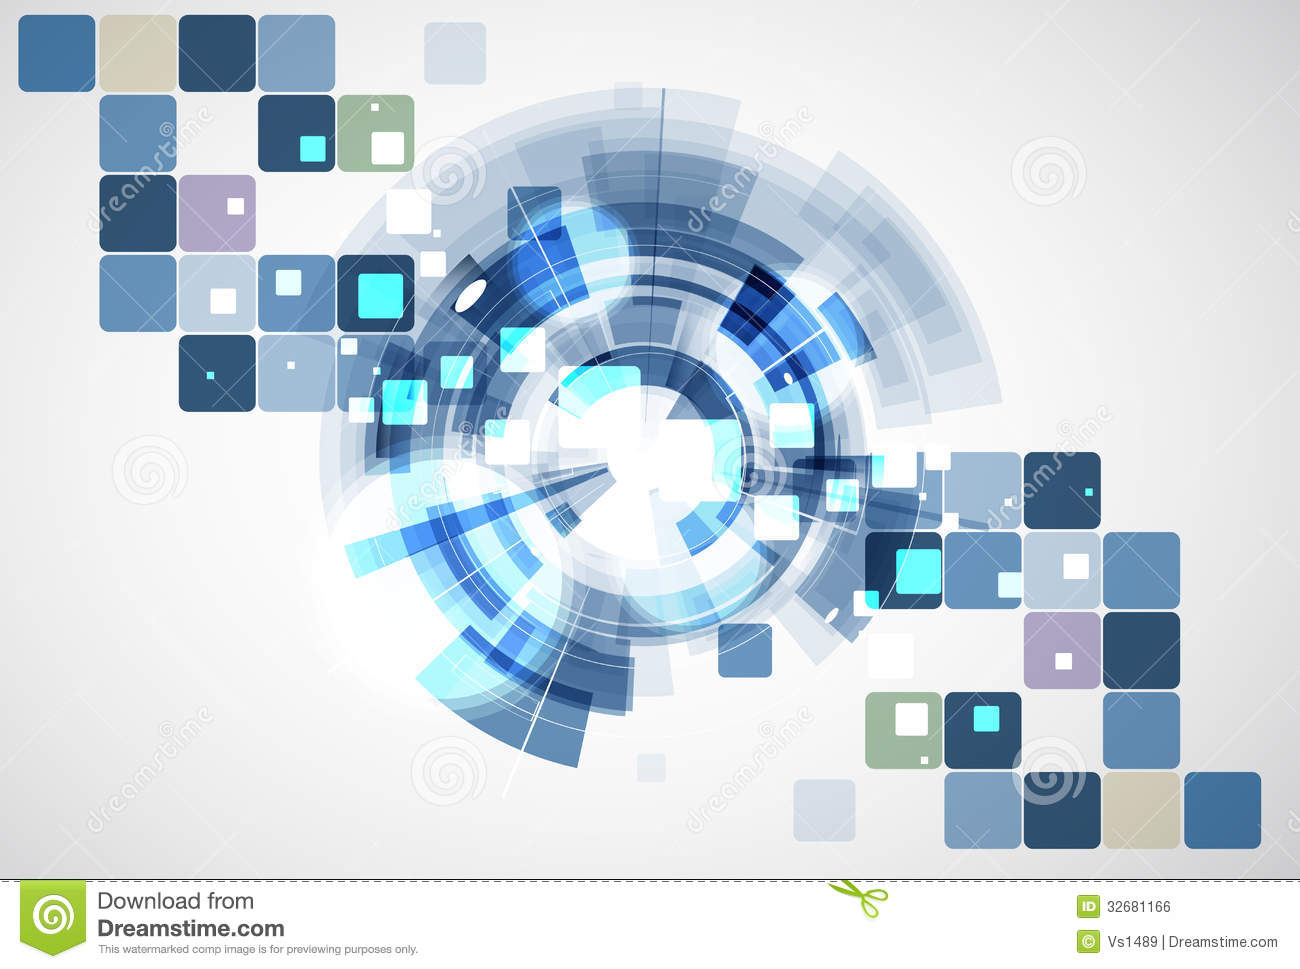 business and information science Information systems are the backbone of modern businesses as the capabilities of information systems and technologies soar, business functions such as marketing, accounting and finance rely heavily on information systems for developing and maintaining strategic advantage.